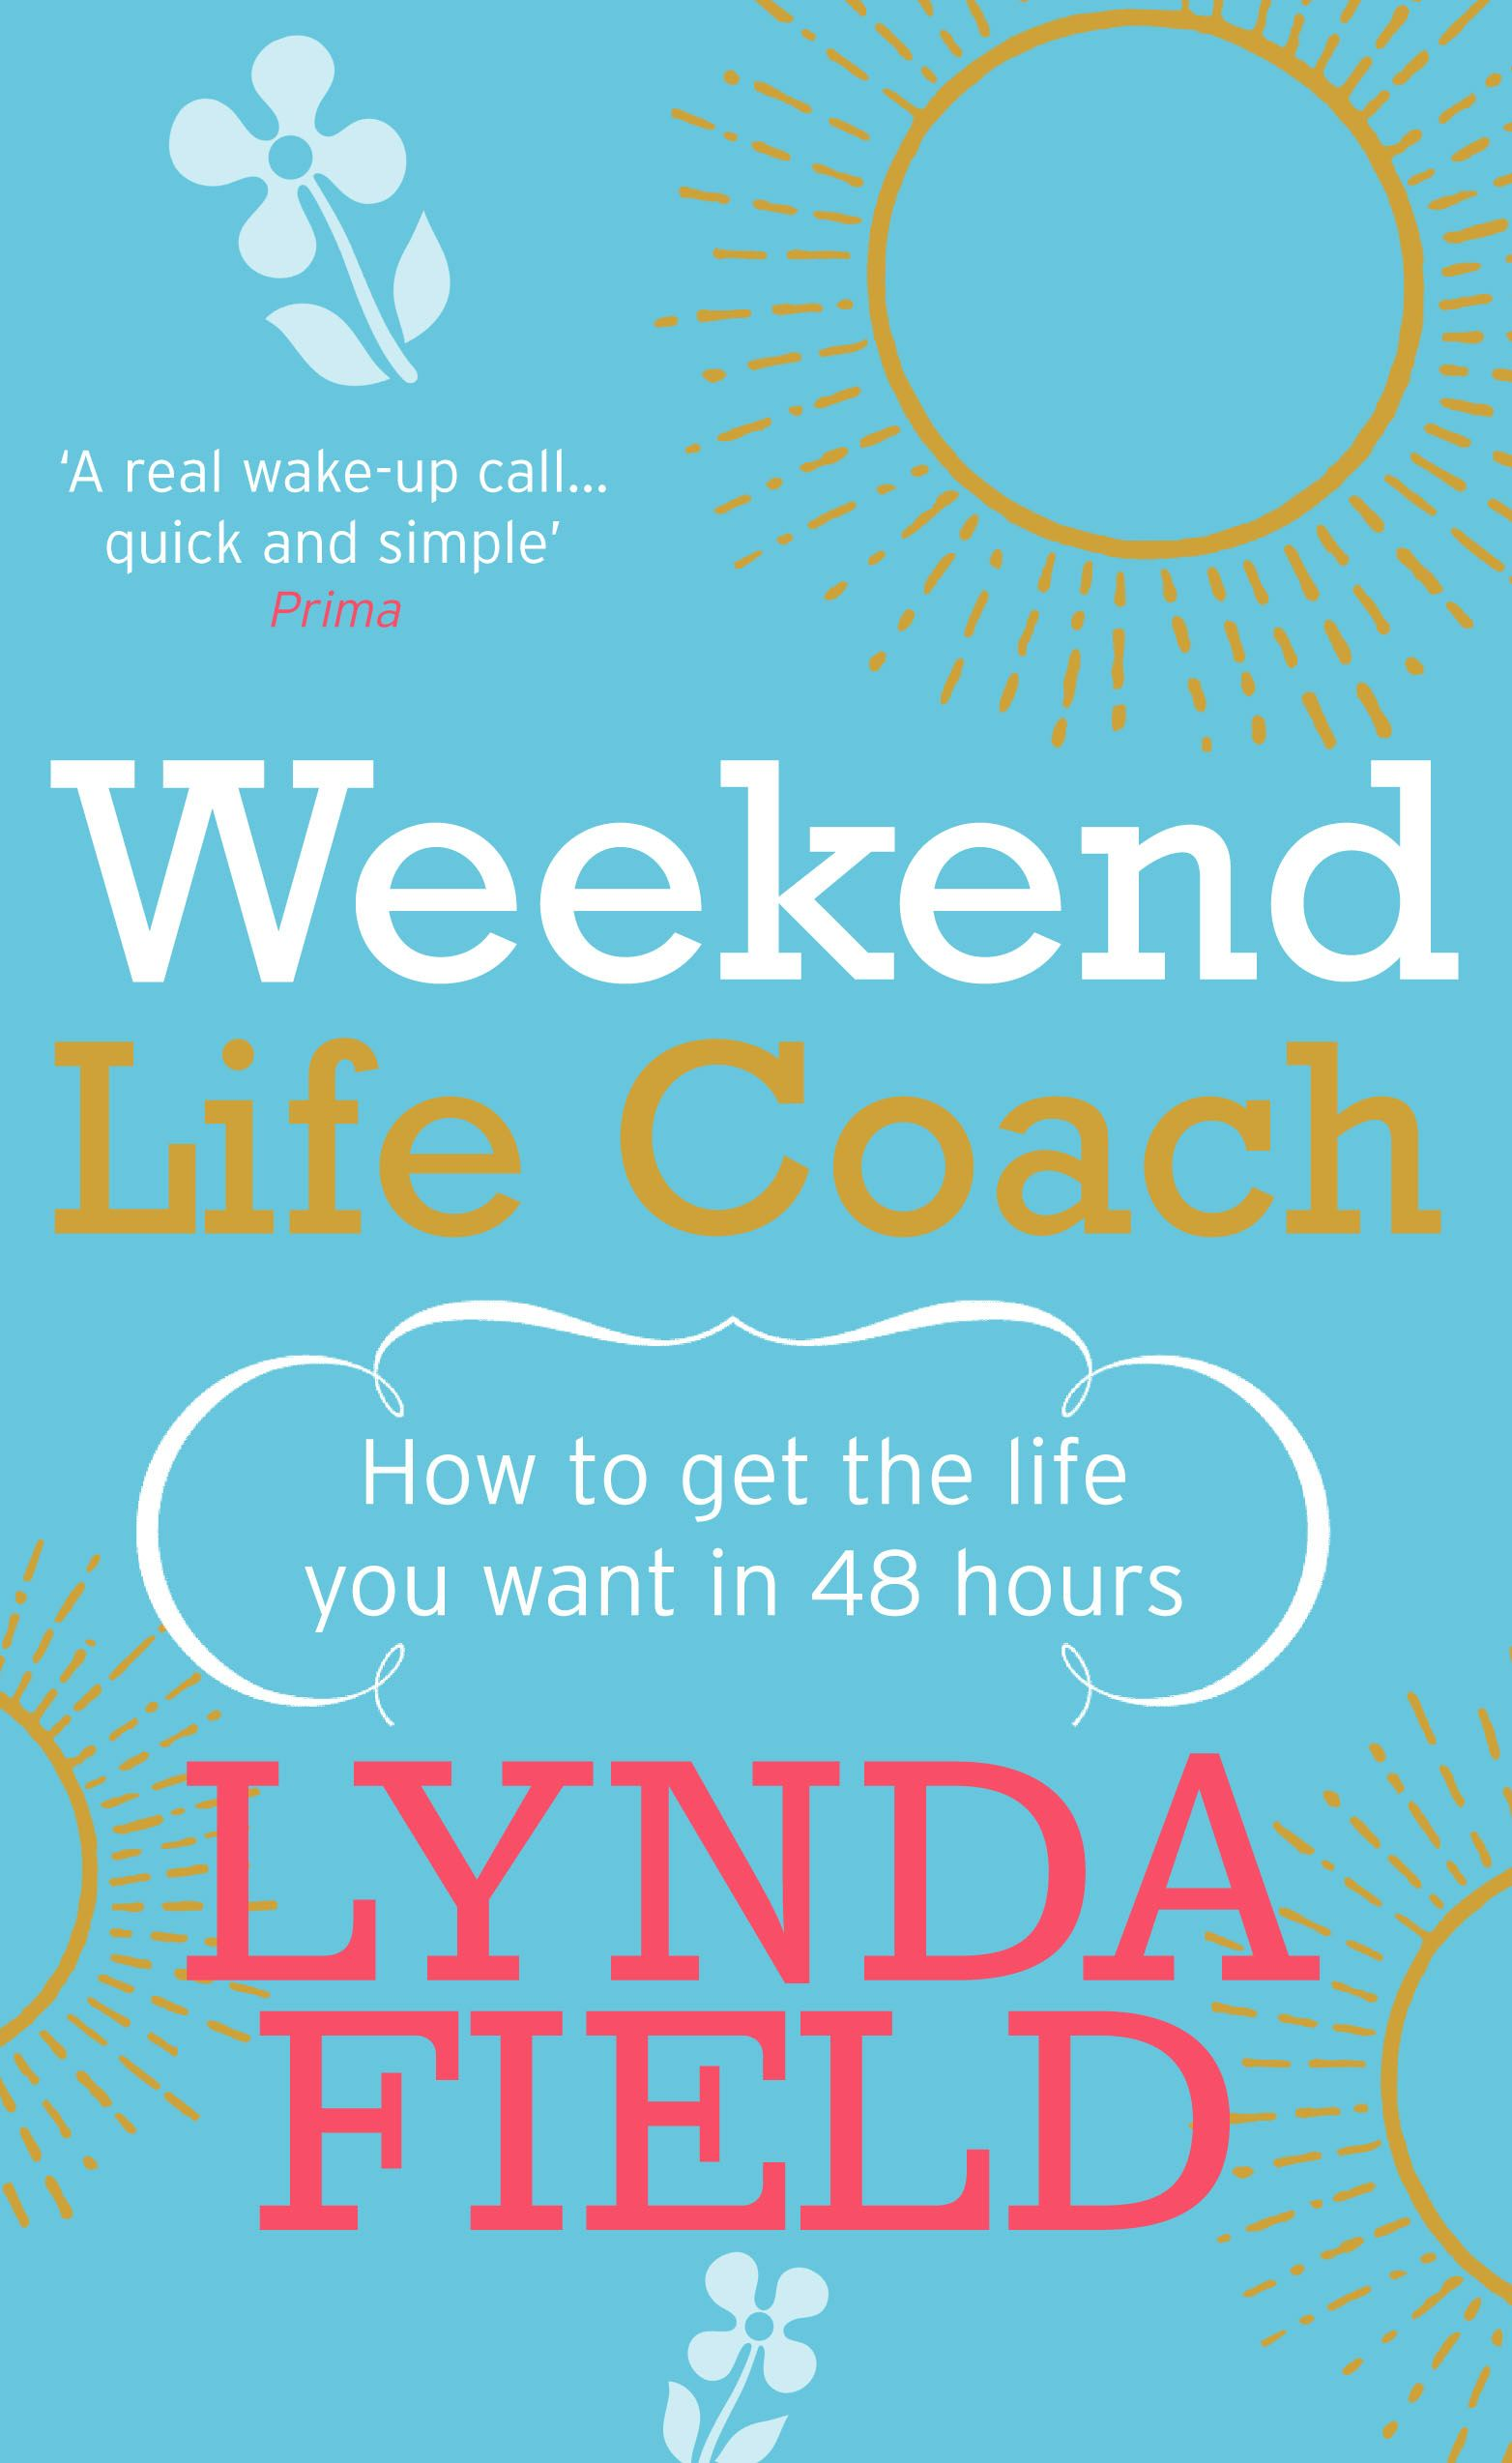 Weekend Life Coach